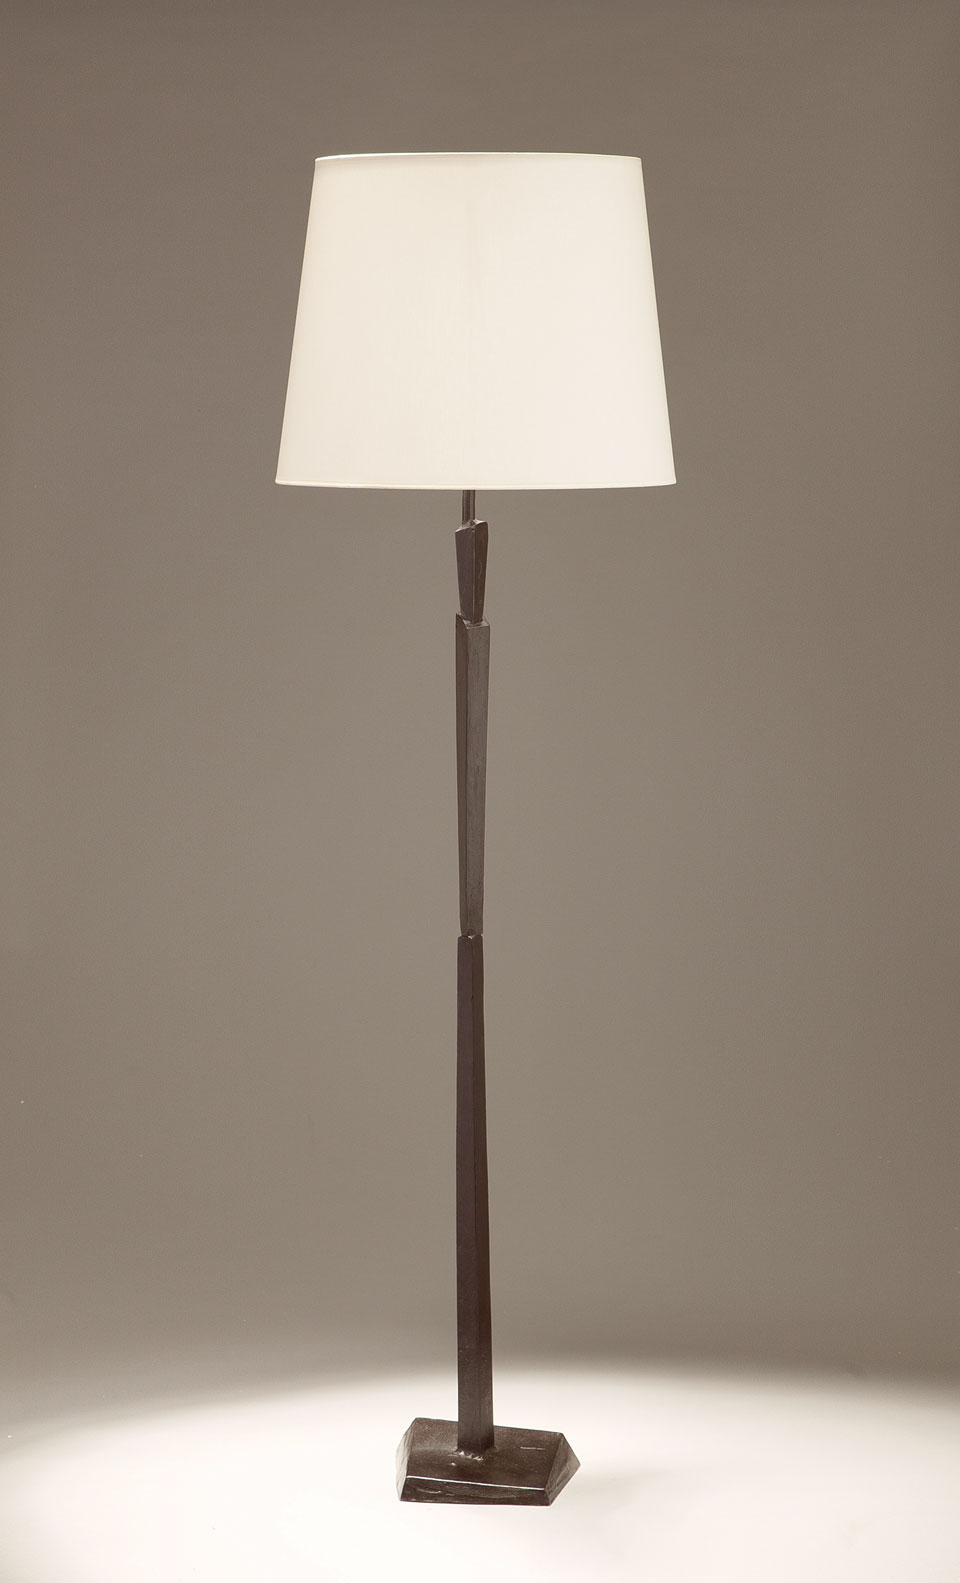 Image of: Cubist Black Patinated Bronze Floor Lamp Objet Insolite Hight Qualite Lighting Made In France Ref 17090397